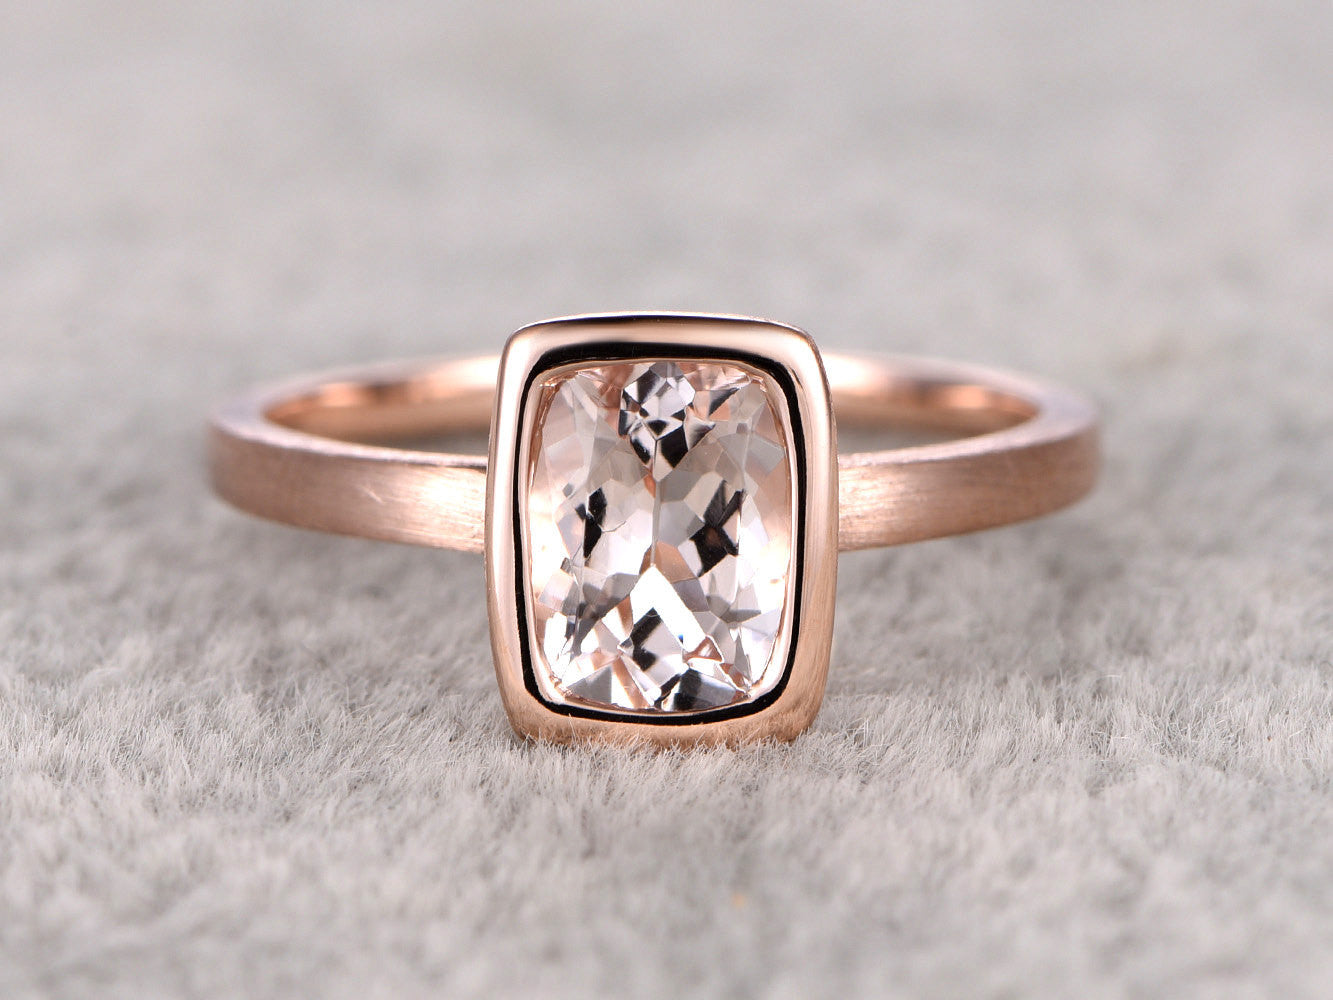 6x8mm Morganite Solitaire Engagement ring Rose gold,Plain gold wedding band,14k,cushion Cut,Promise Bridal Ring,Bezel,pink,Sand band design